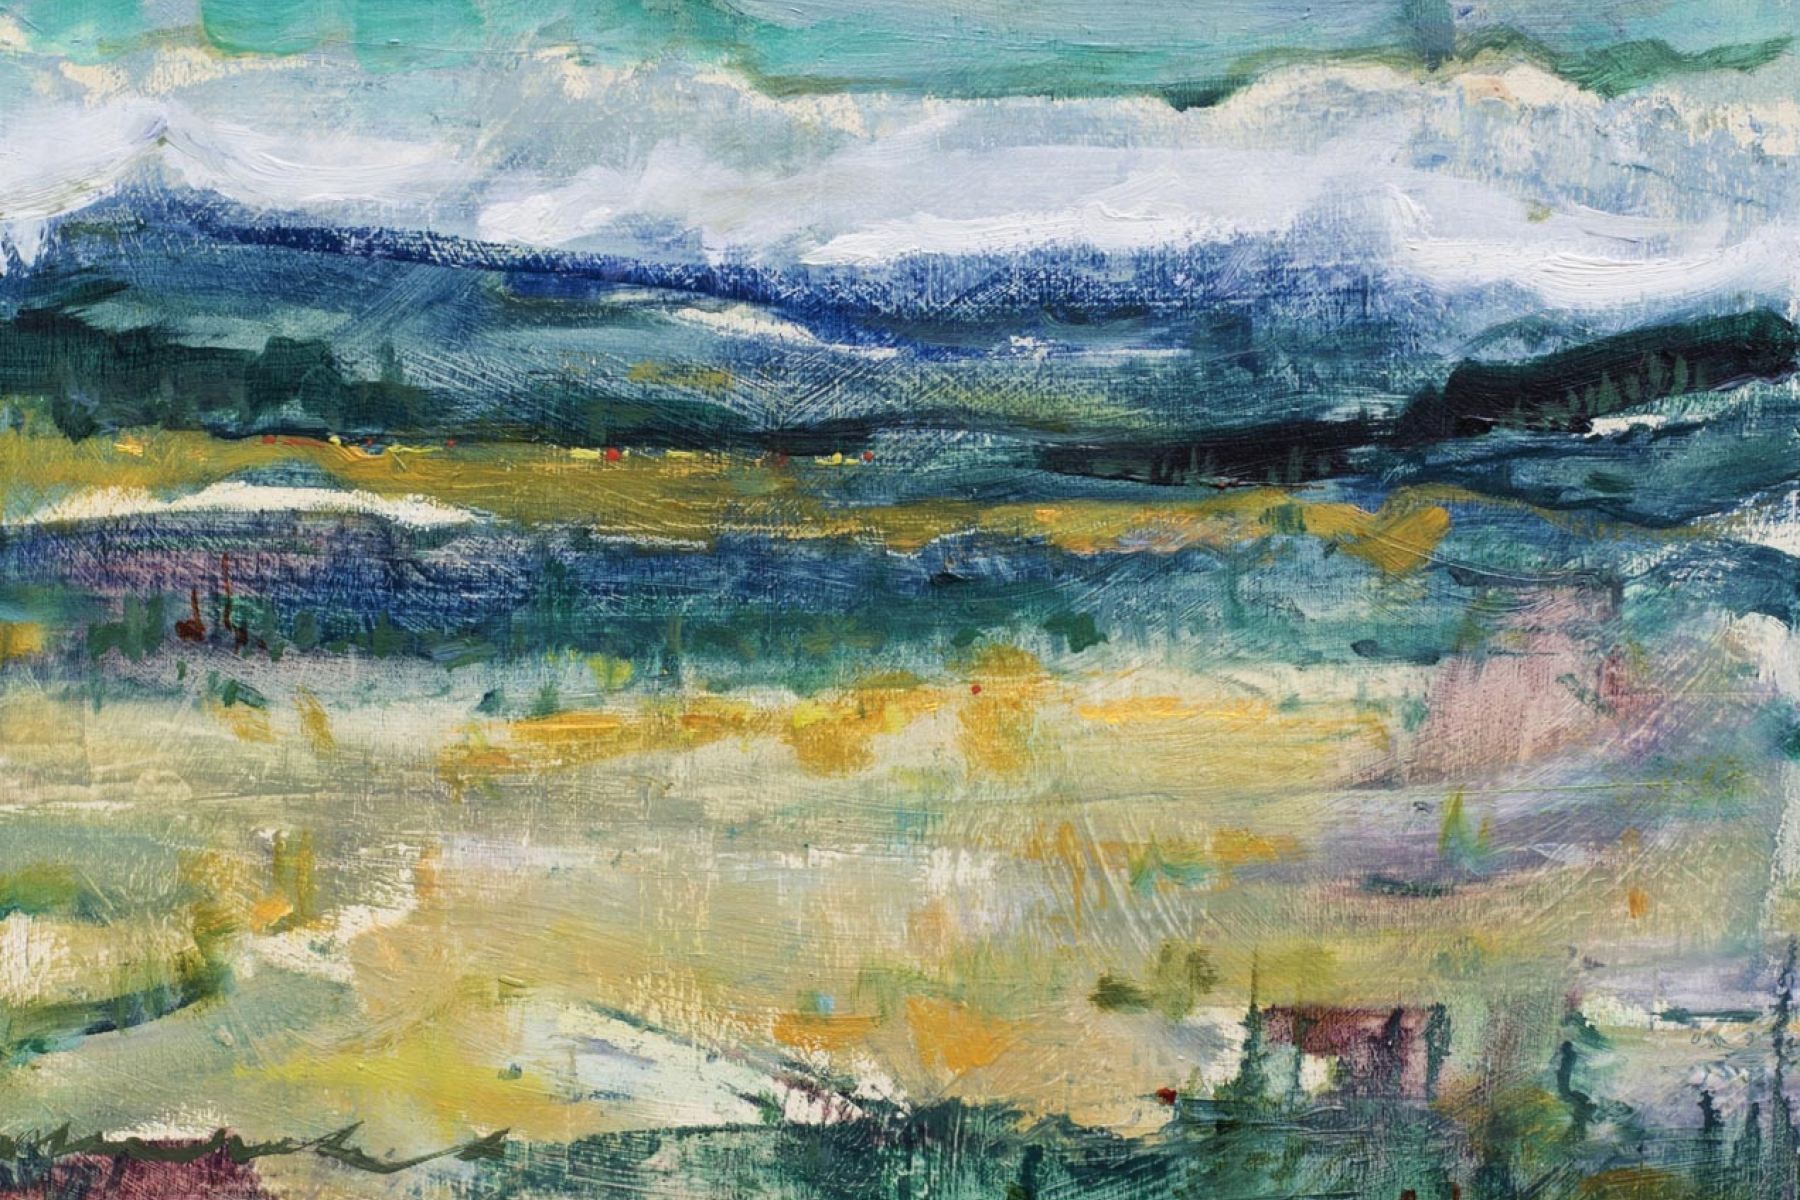 the olde west   dreamscapes   Artist painter Kim Pollard   Canada   Pacific Northwest